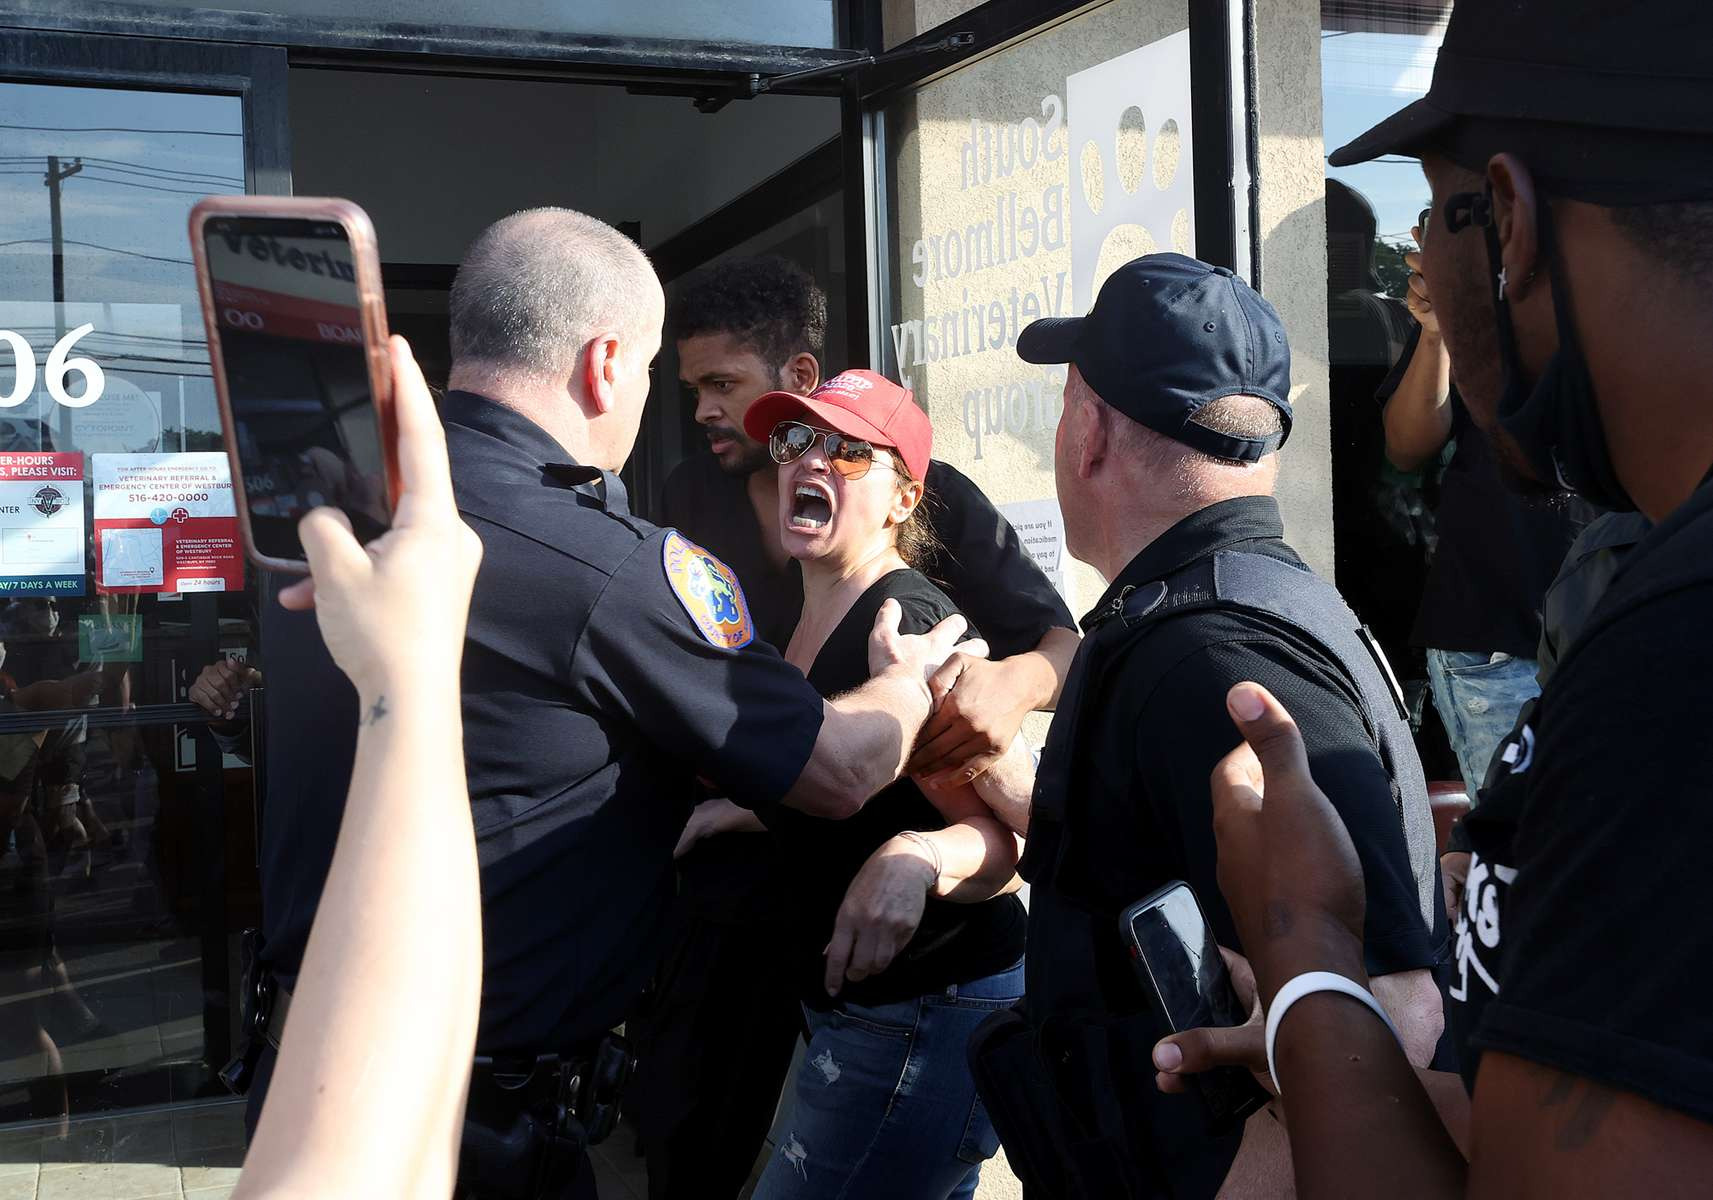 A woman is detained by Nassau County Police after disrupting the Protest for George Floyd on June 04, 2020 in Merrick, New York.  Minneapolis Police officer Derek Chauvin was filmed kneeling on George Floyd's neck. Floyd was later pronounced dead at a local hospital. Across the country, protests against Floyd's death have set off days and nights of rage as its the most recent in a series of deaths of black Americans by the police.